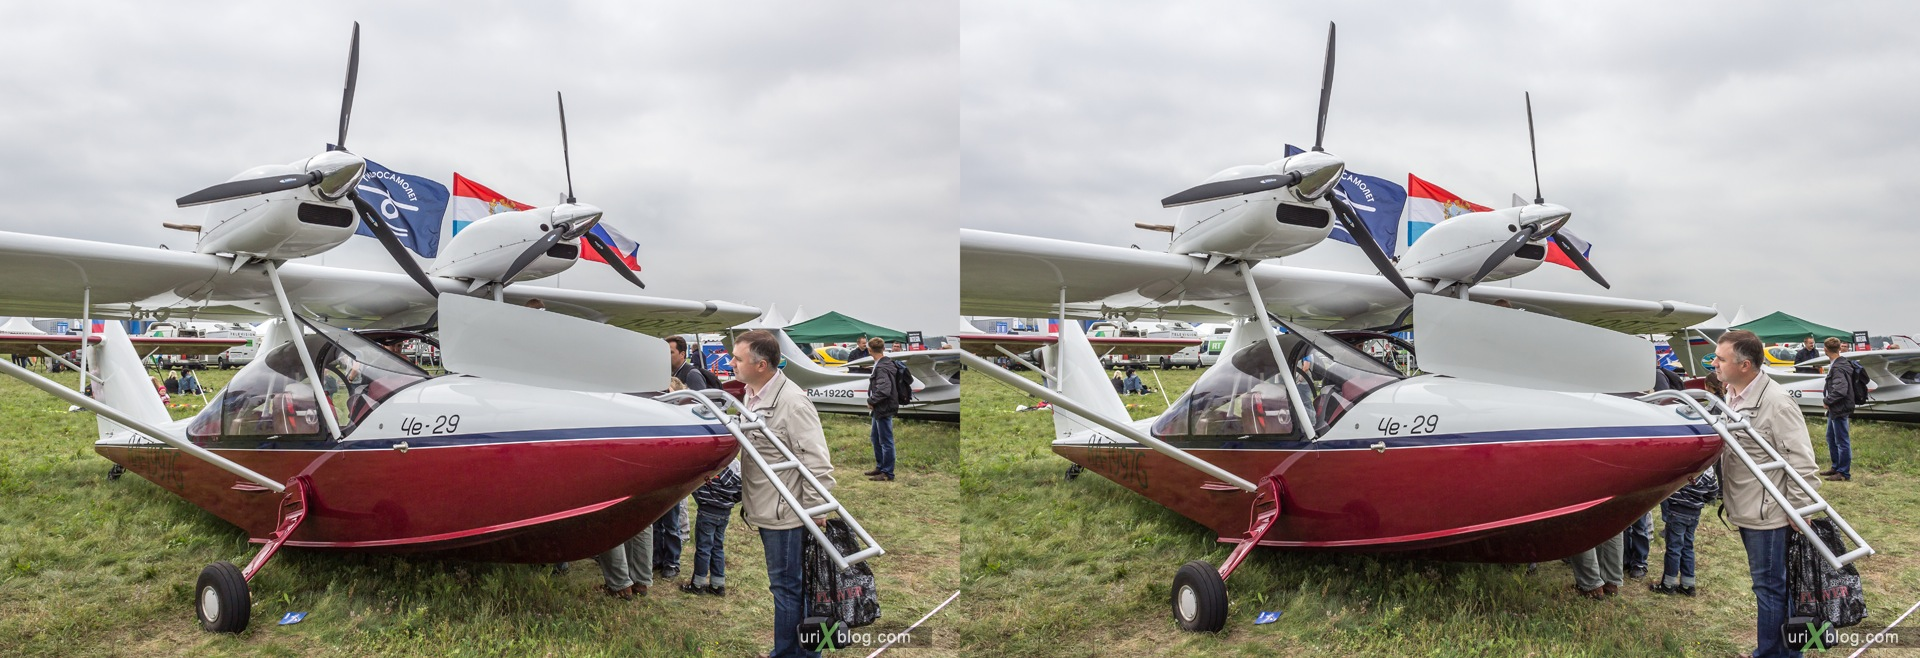 2013, Che-29, MAKS, International Aviation and Space Salon, Russia, Ramenskoye airfield, airplane, 3D, stereo pair, cross-eyed, crossview, cross view stereo pair, stereoscopic